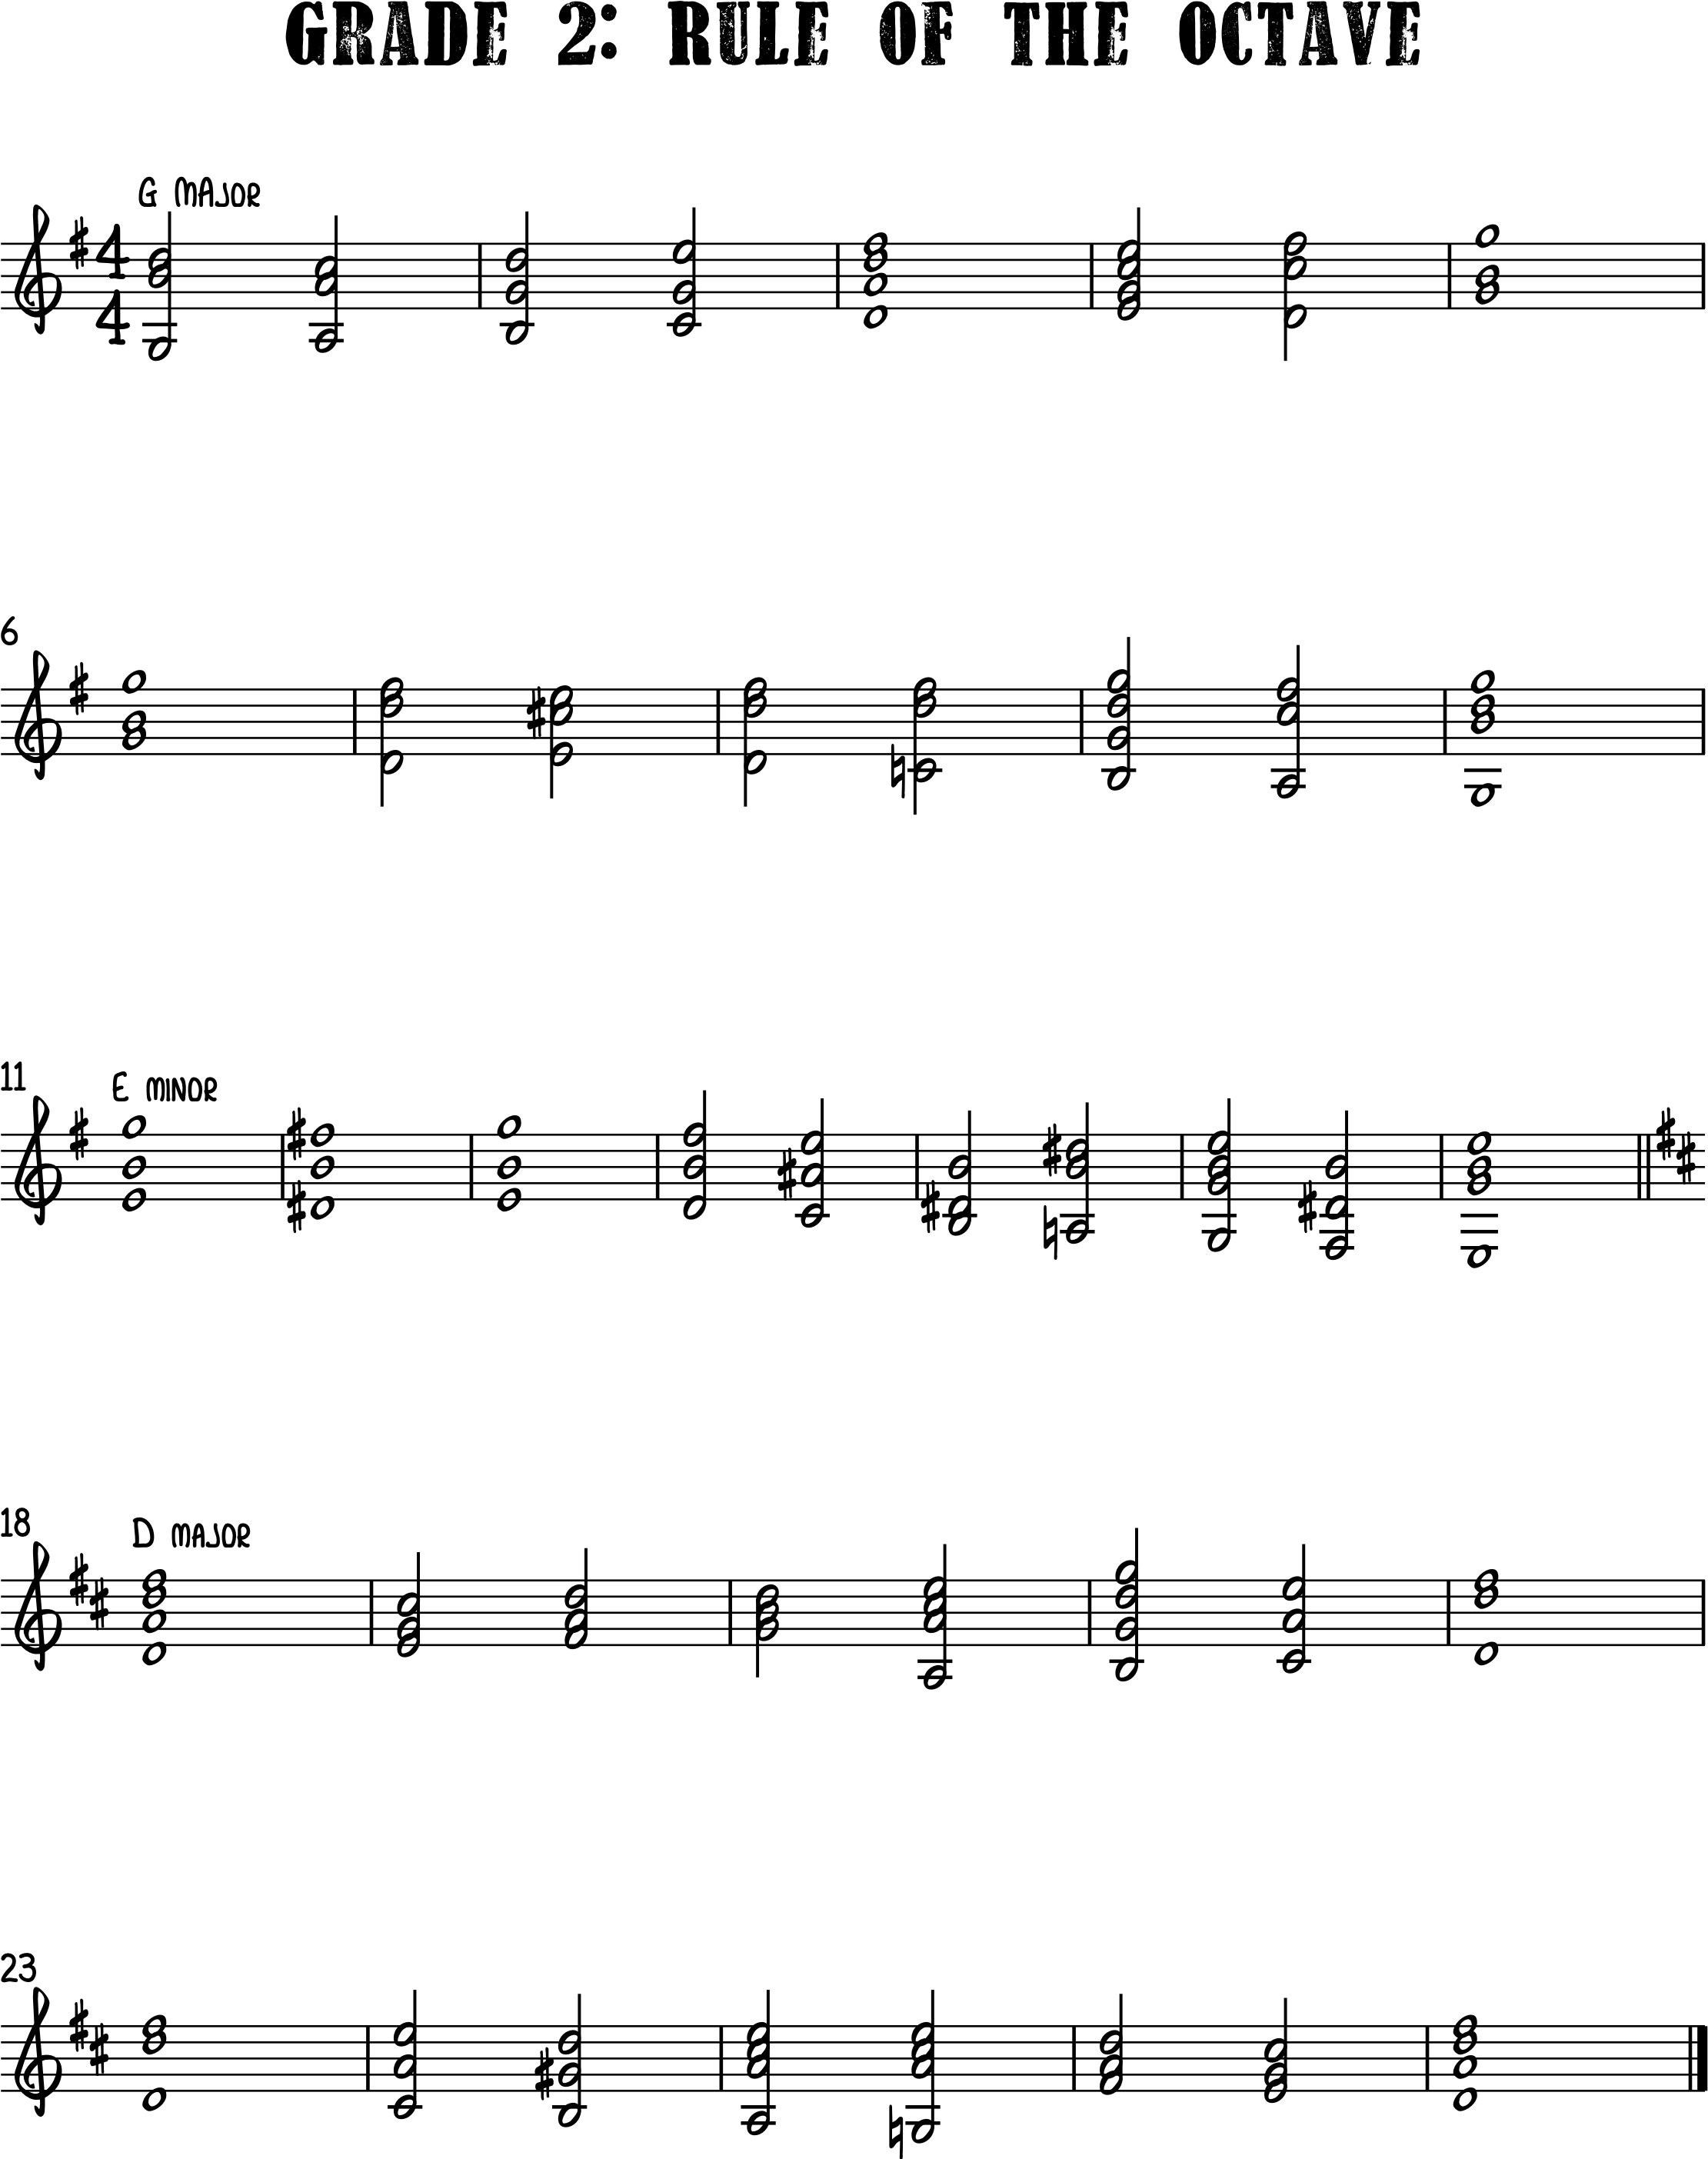 Music theory is classist, but Schenker's cool-grade-2-rule-octave-png